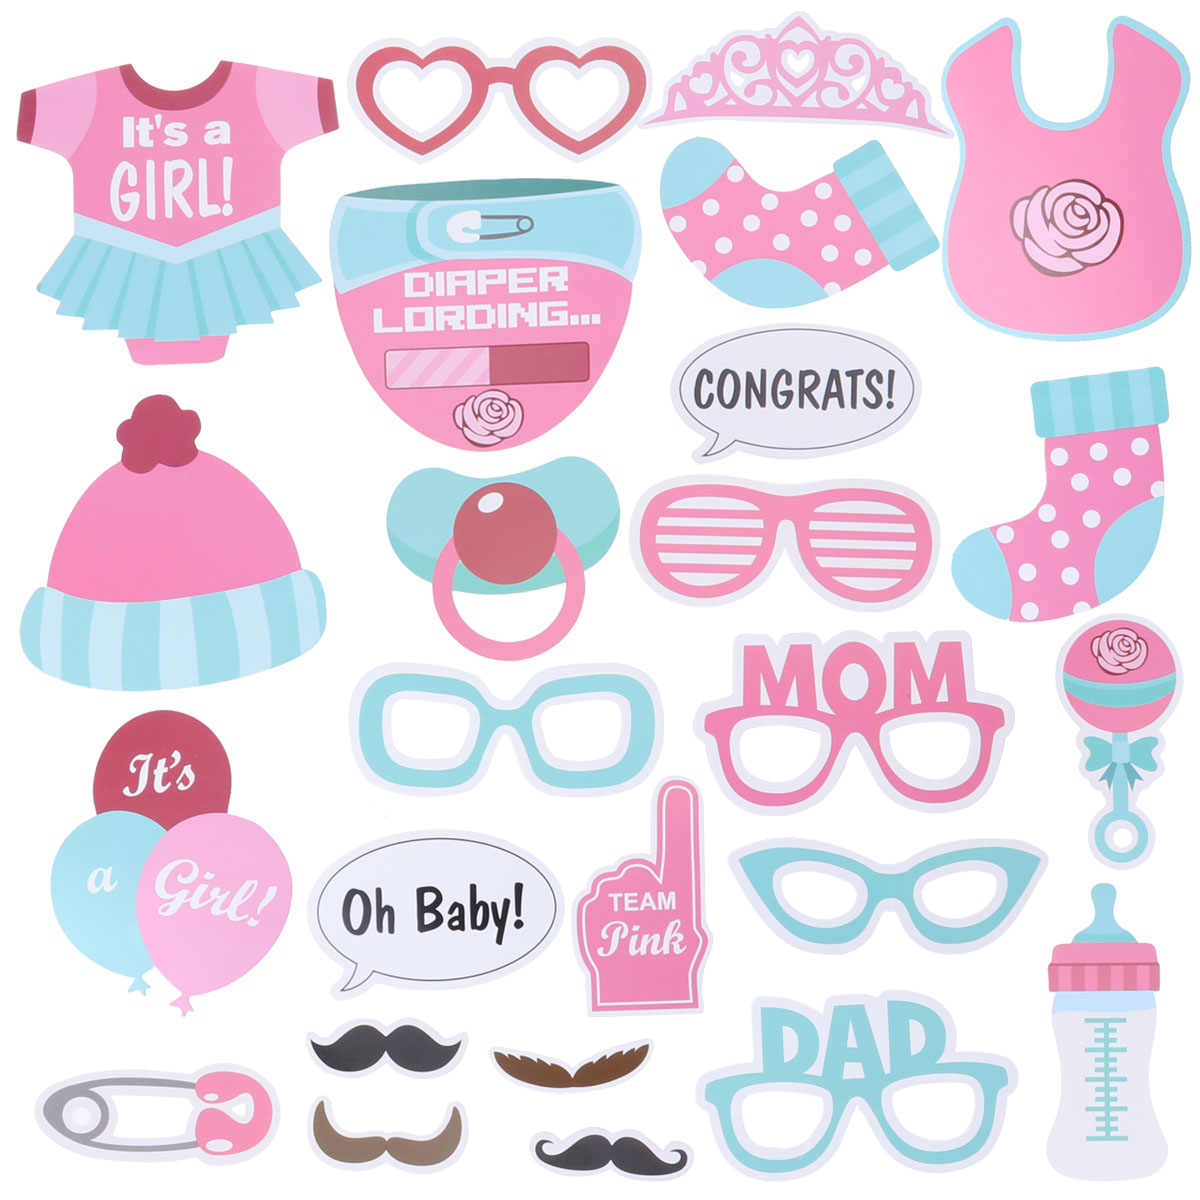 7d3a21c8044c Detail Feedback Questions about 25pc Baby Girl Birthday Photo Booth ...